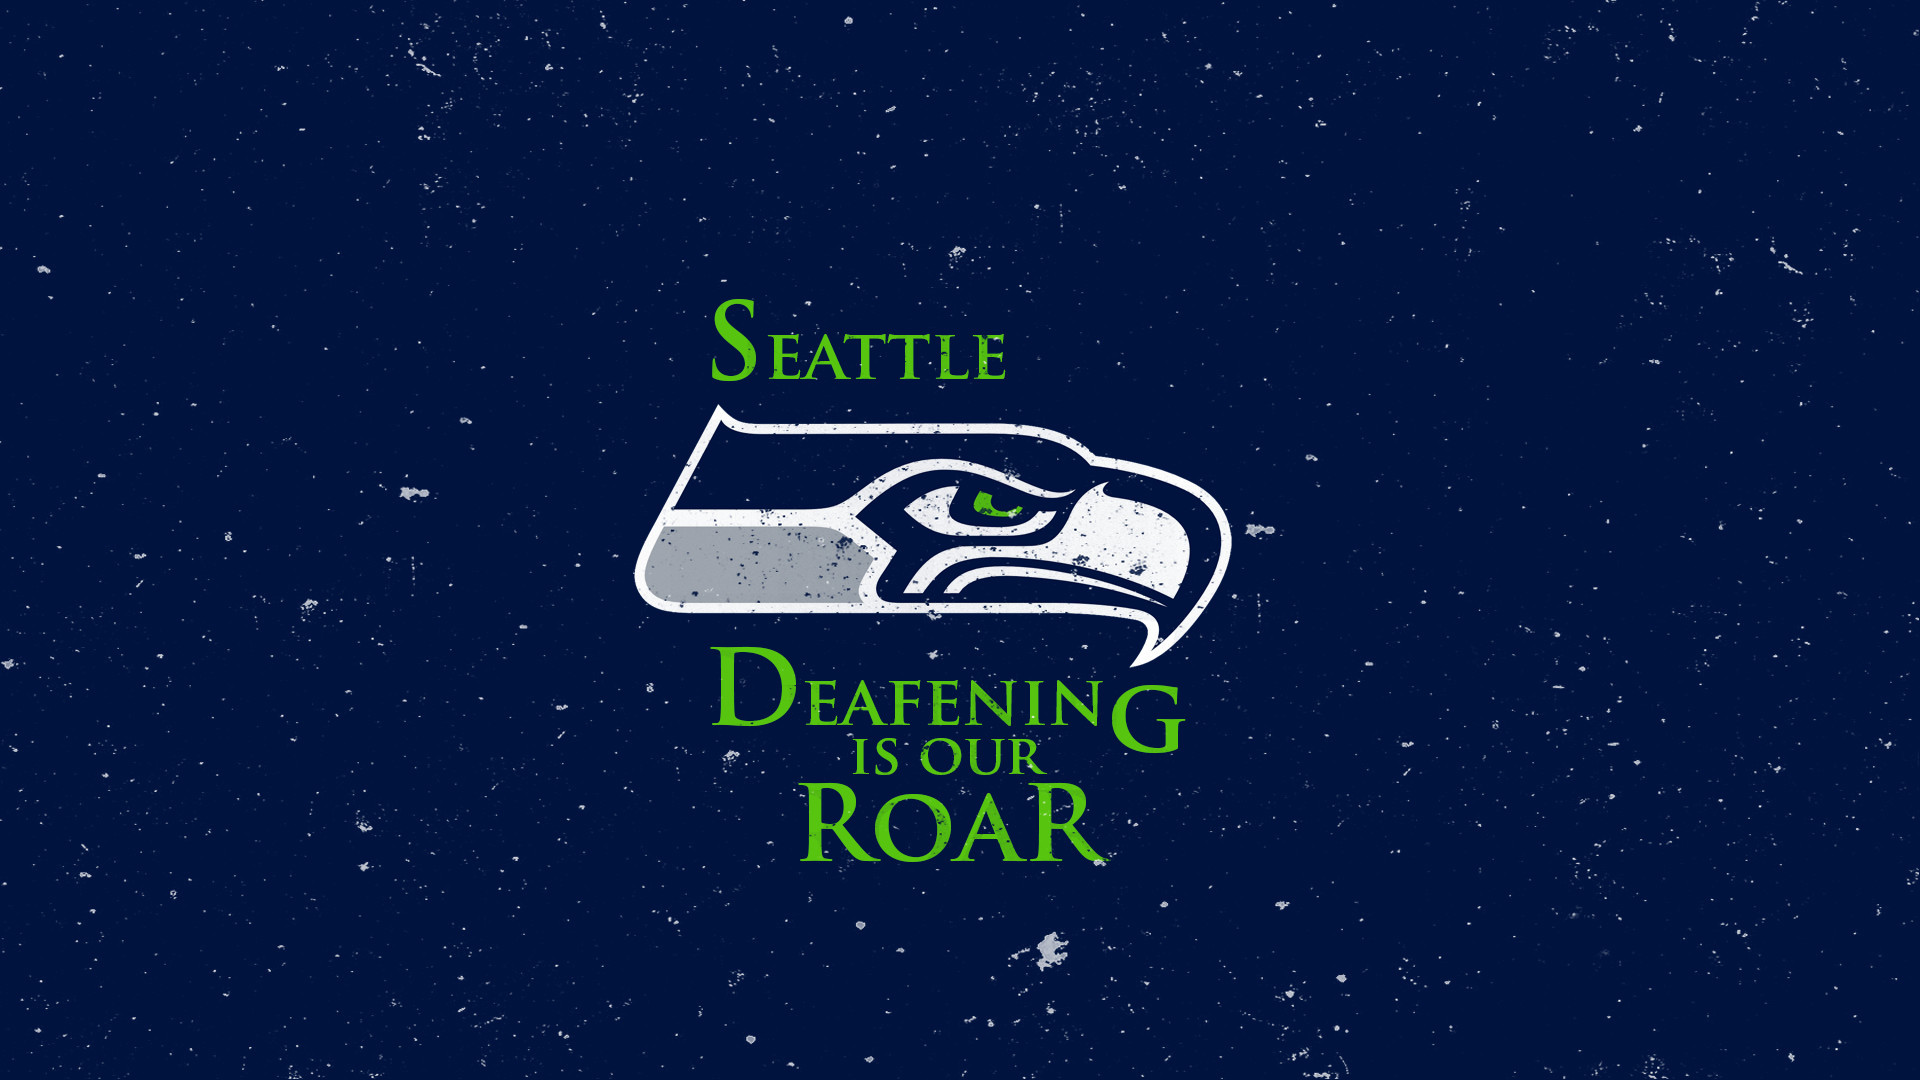 1920x1080 2593x1458 seattle seahawks Computer Wallpapers, Desktop Backgrounds .